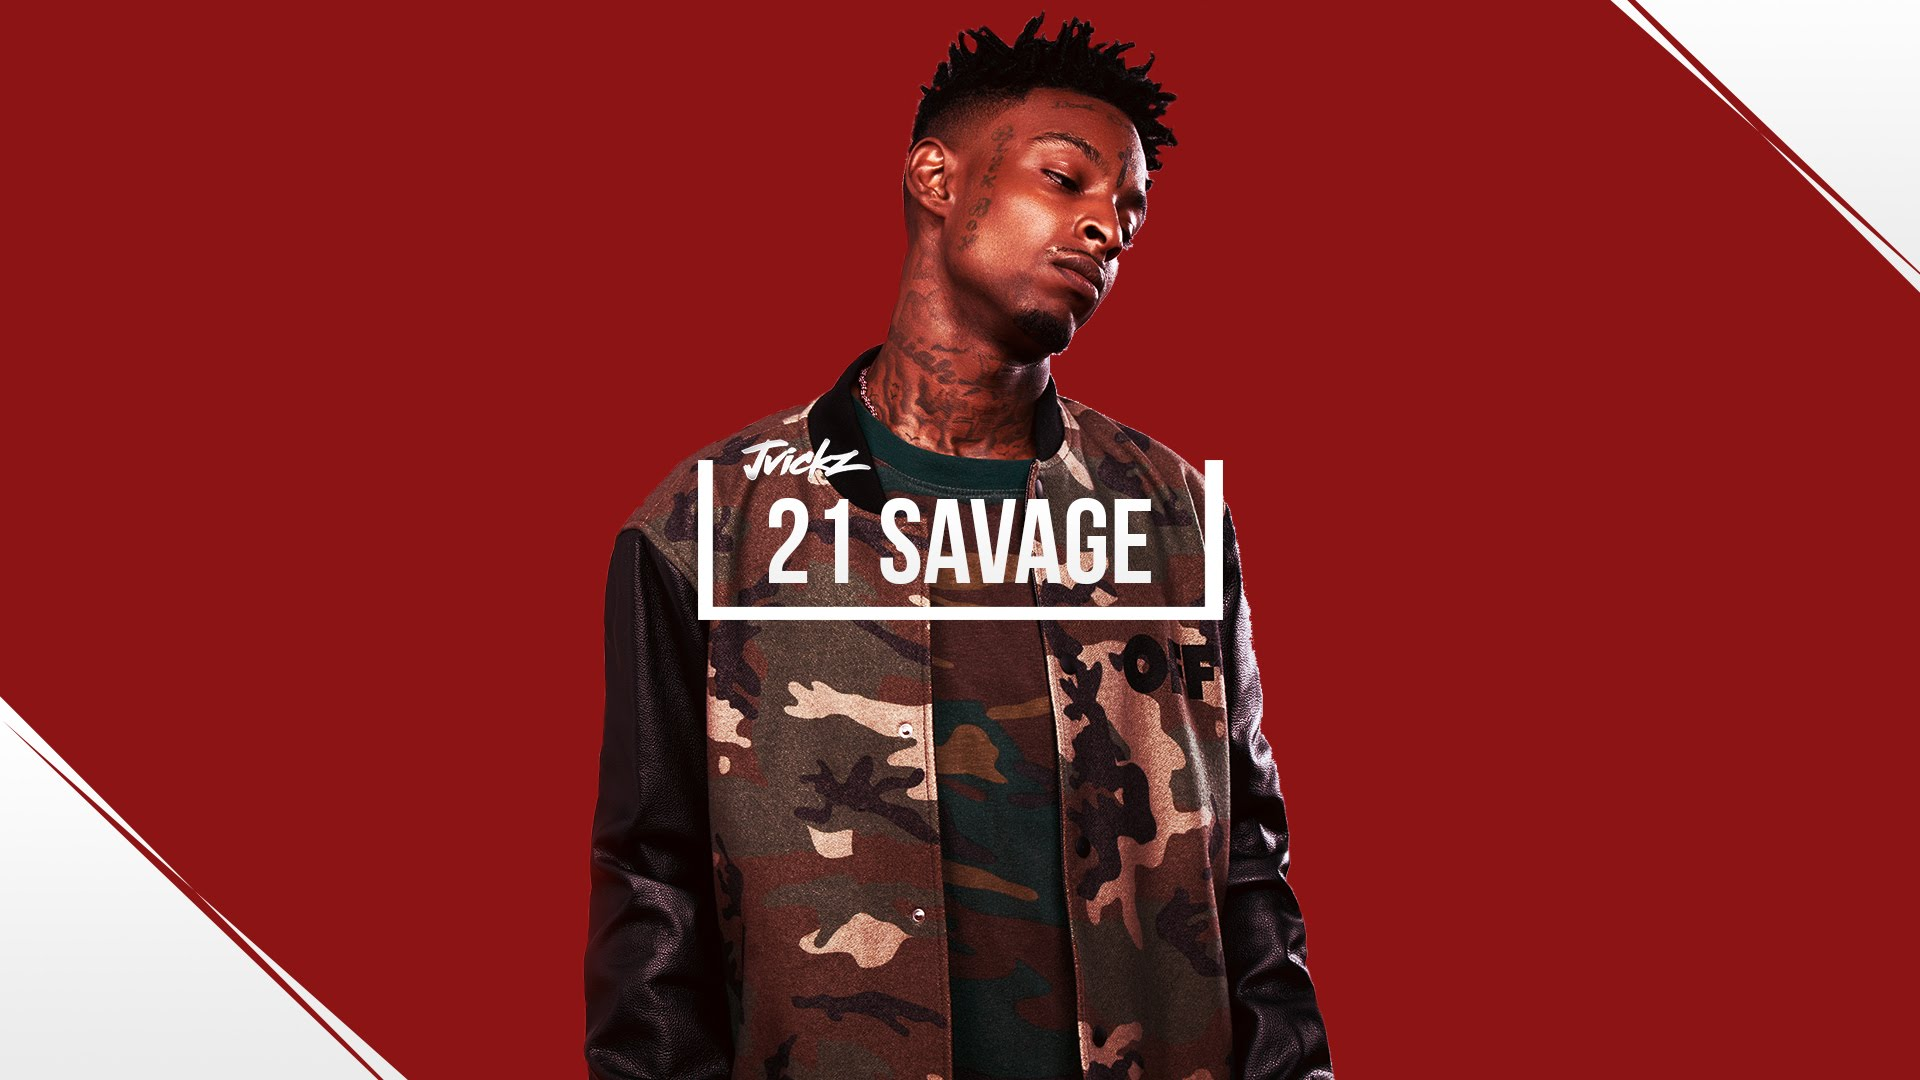 10 21 savage hd wallpapers background images wallpaper - 21 savage iphone wallpaper ...